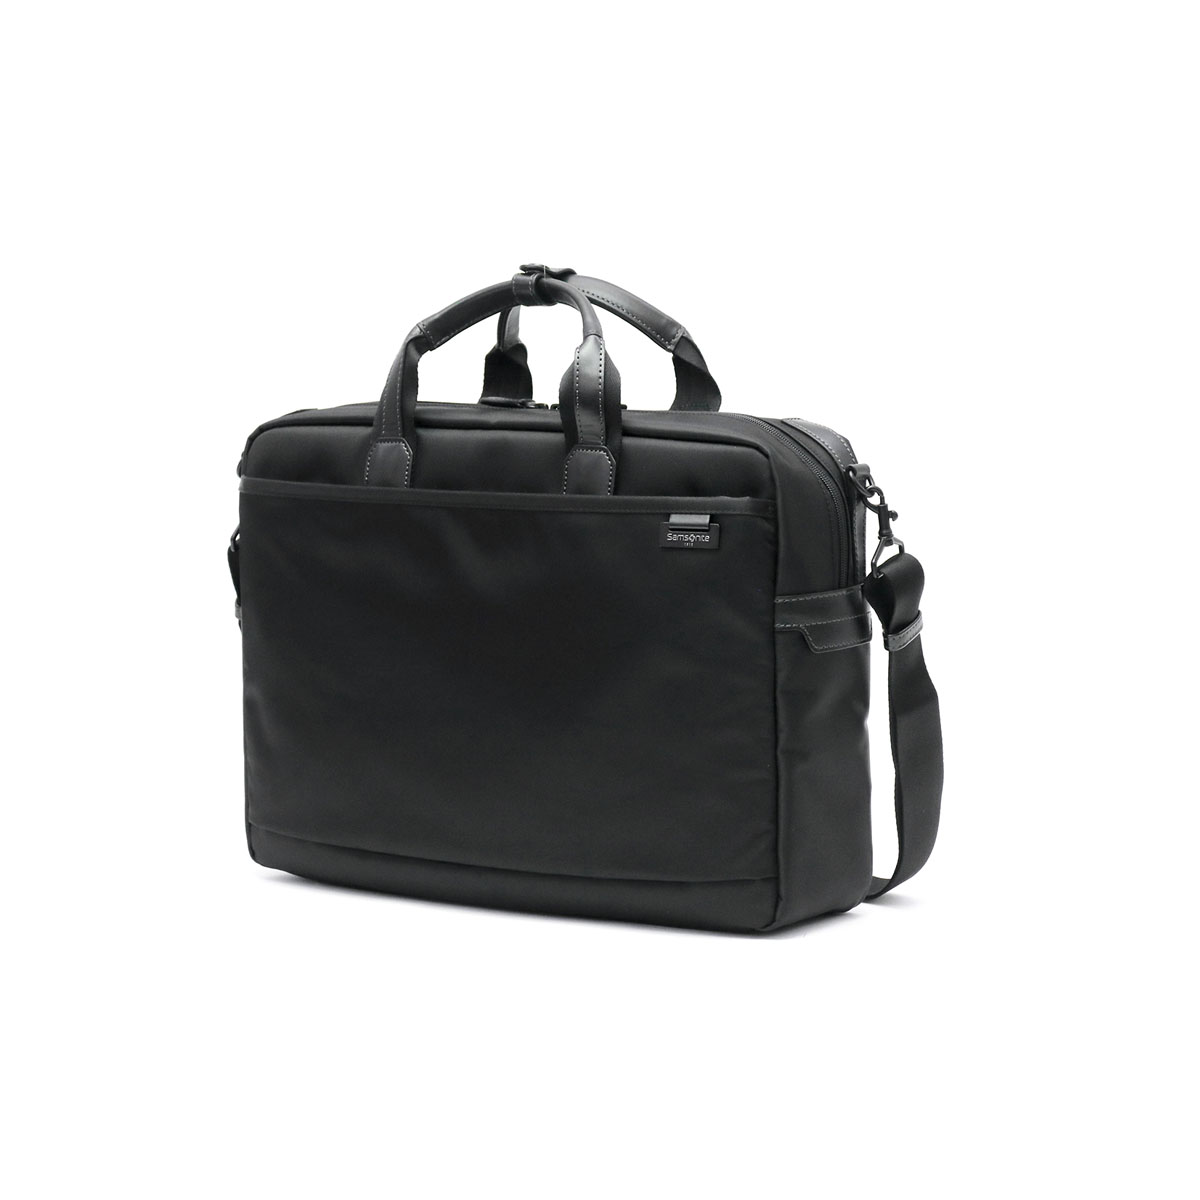 a27daaeb3c ... Samsonite Briefcase Samsonite 3WAY Brief Business Bag DEBONAIR 4  DEBONAIR 4 3-Way Briefcase 1R ...